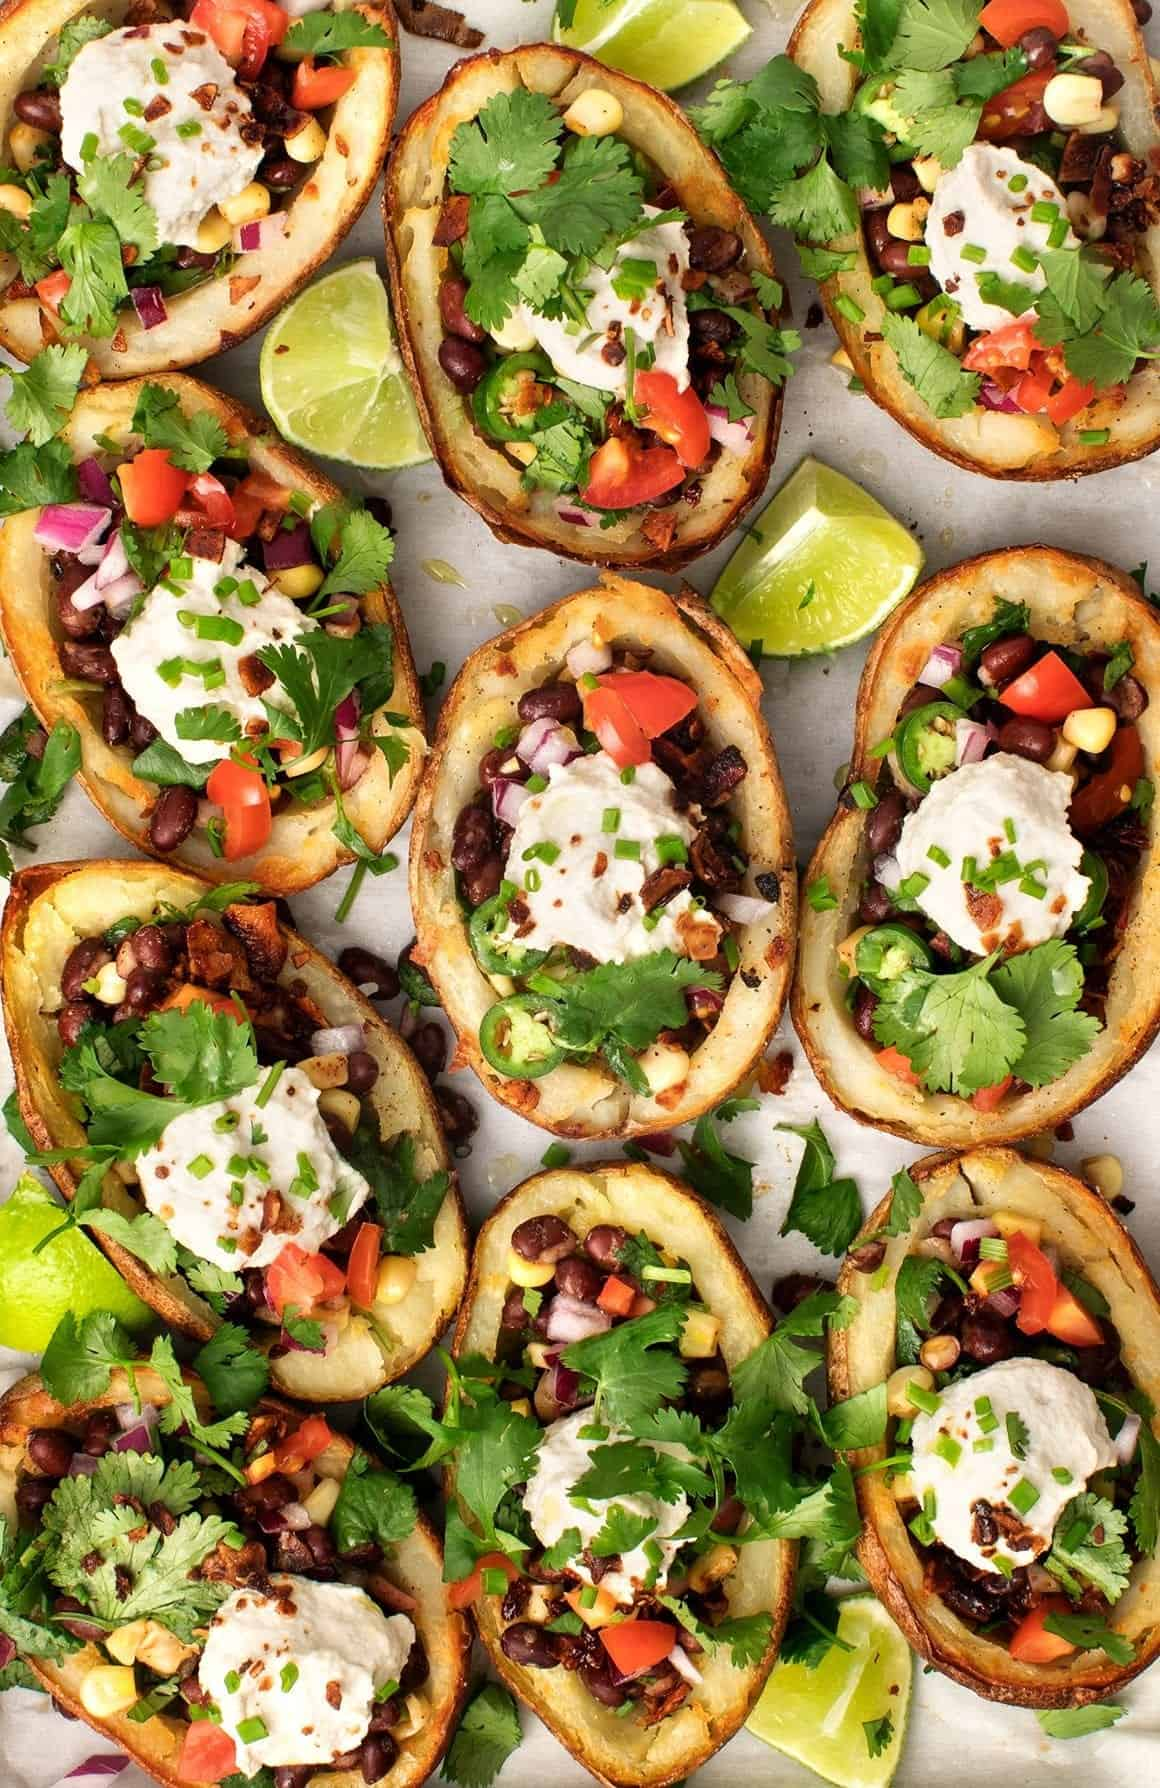 Healthy Game Day Recipes - Vegan Stuffed Potato Skins